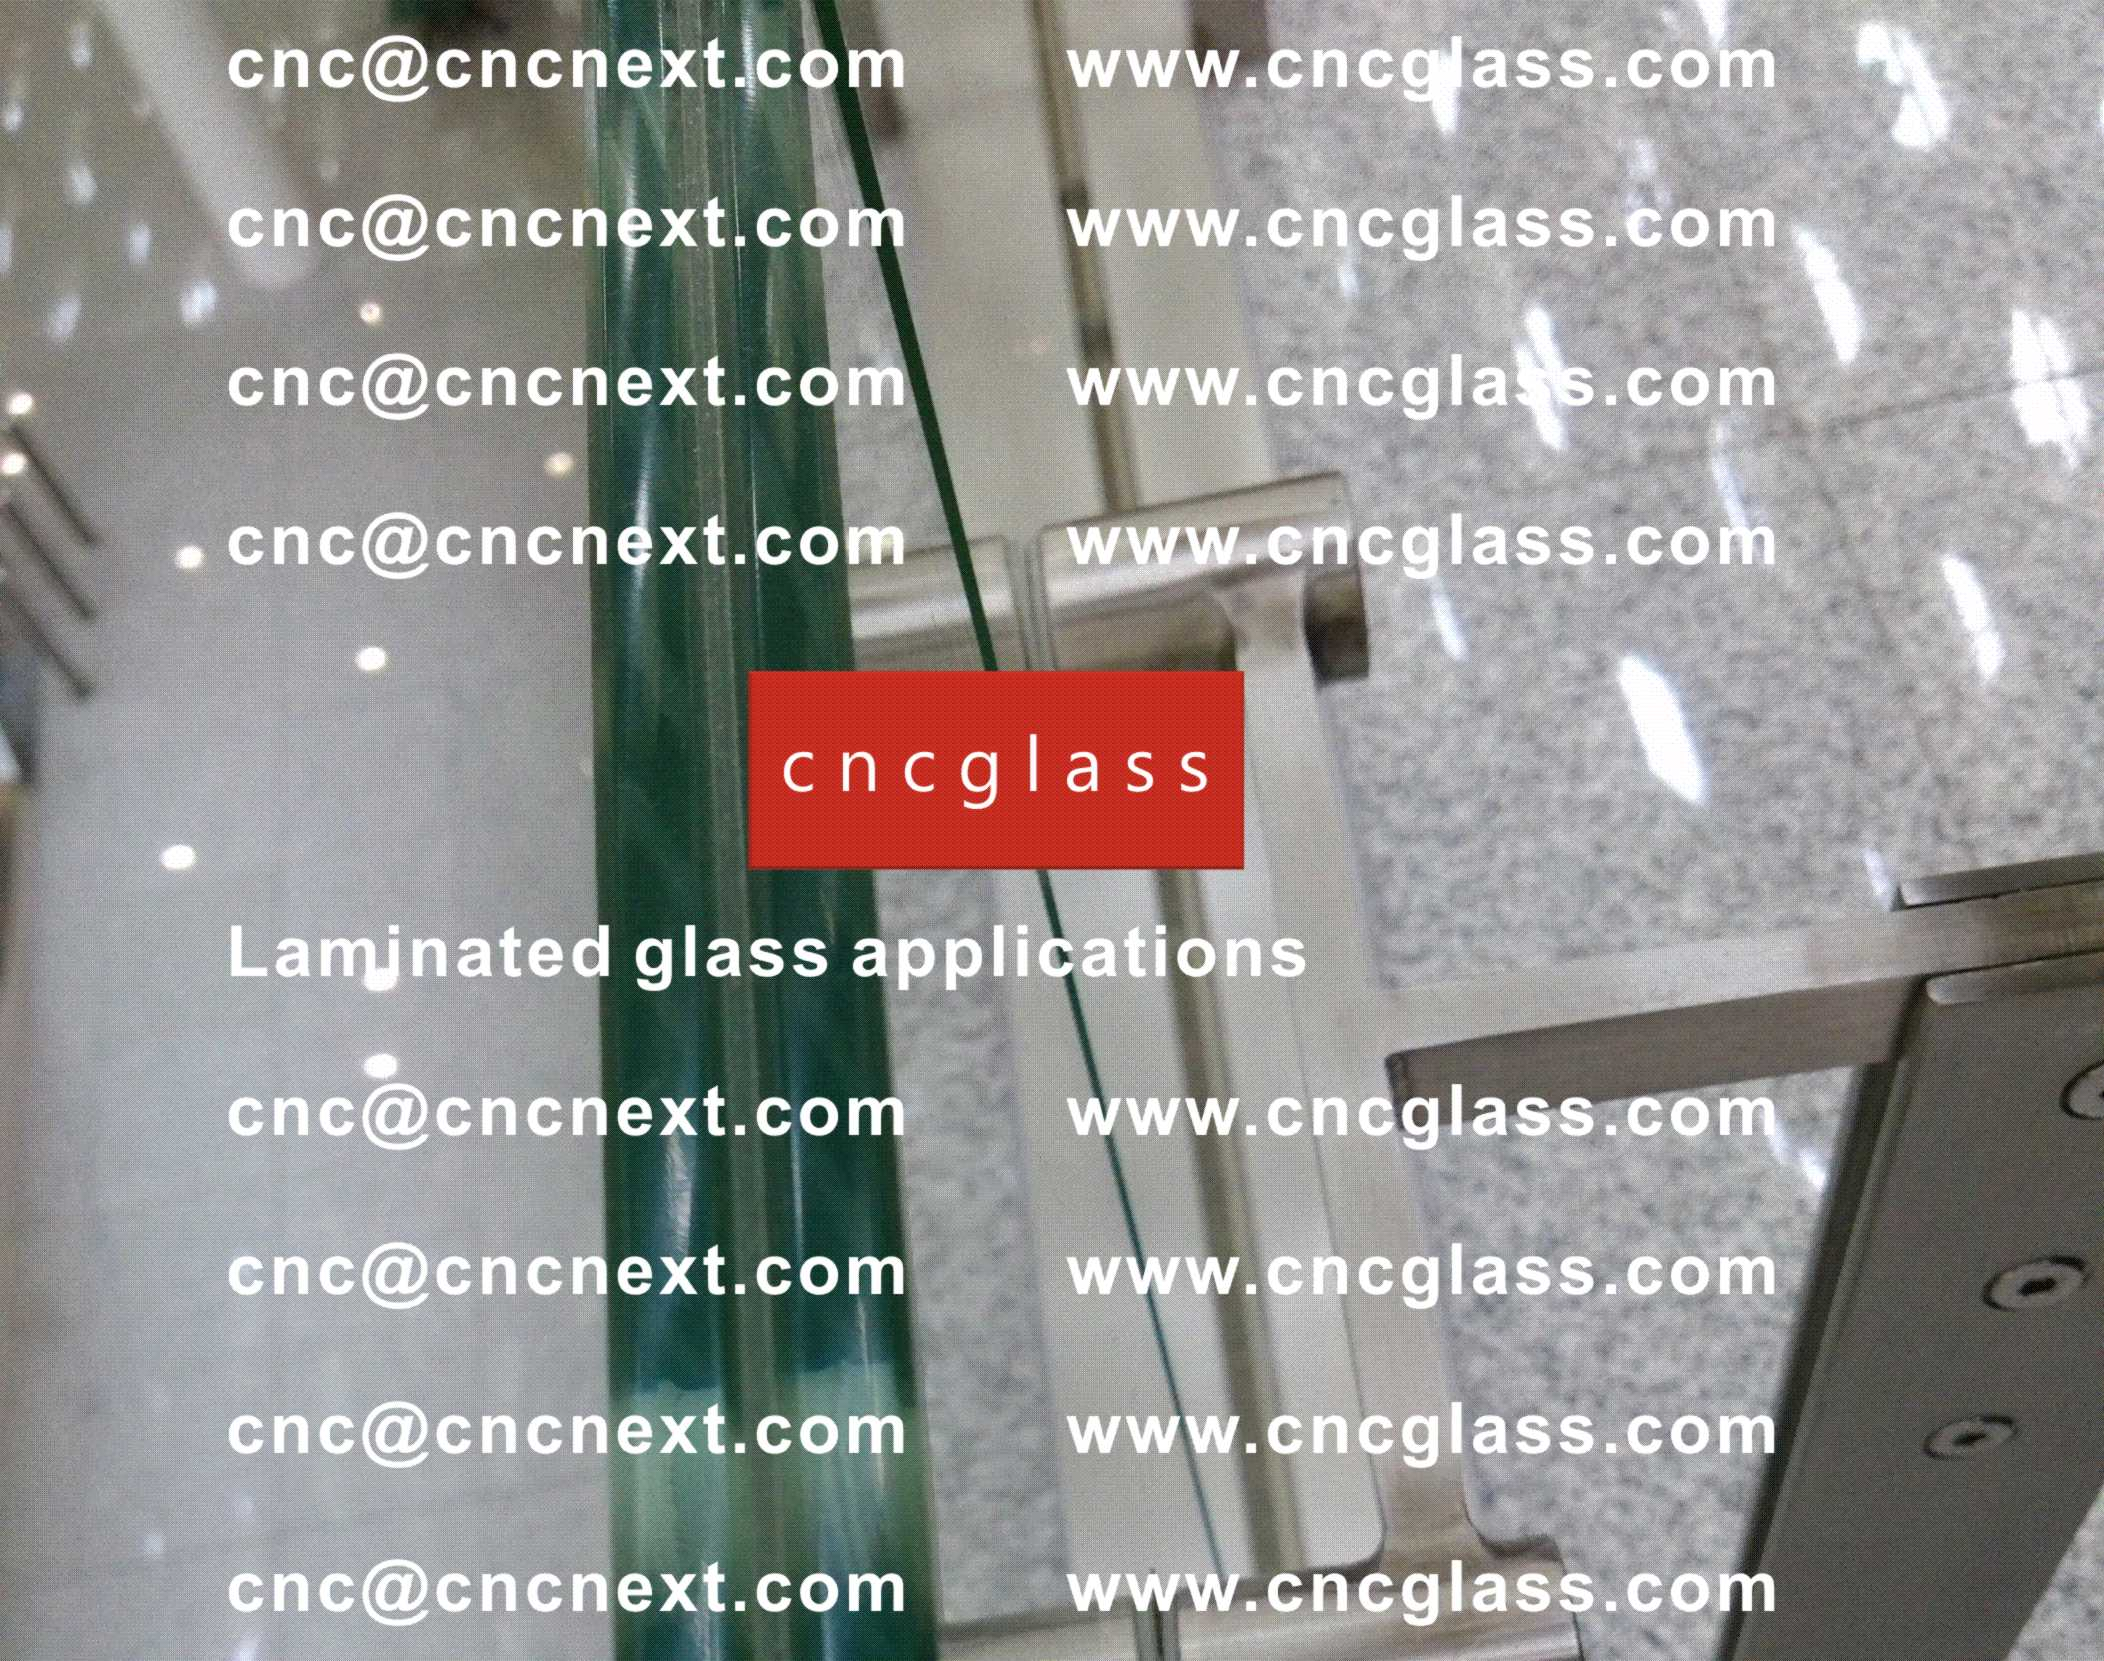 001 EVAFORCE LAMINATED GLASS